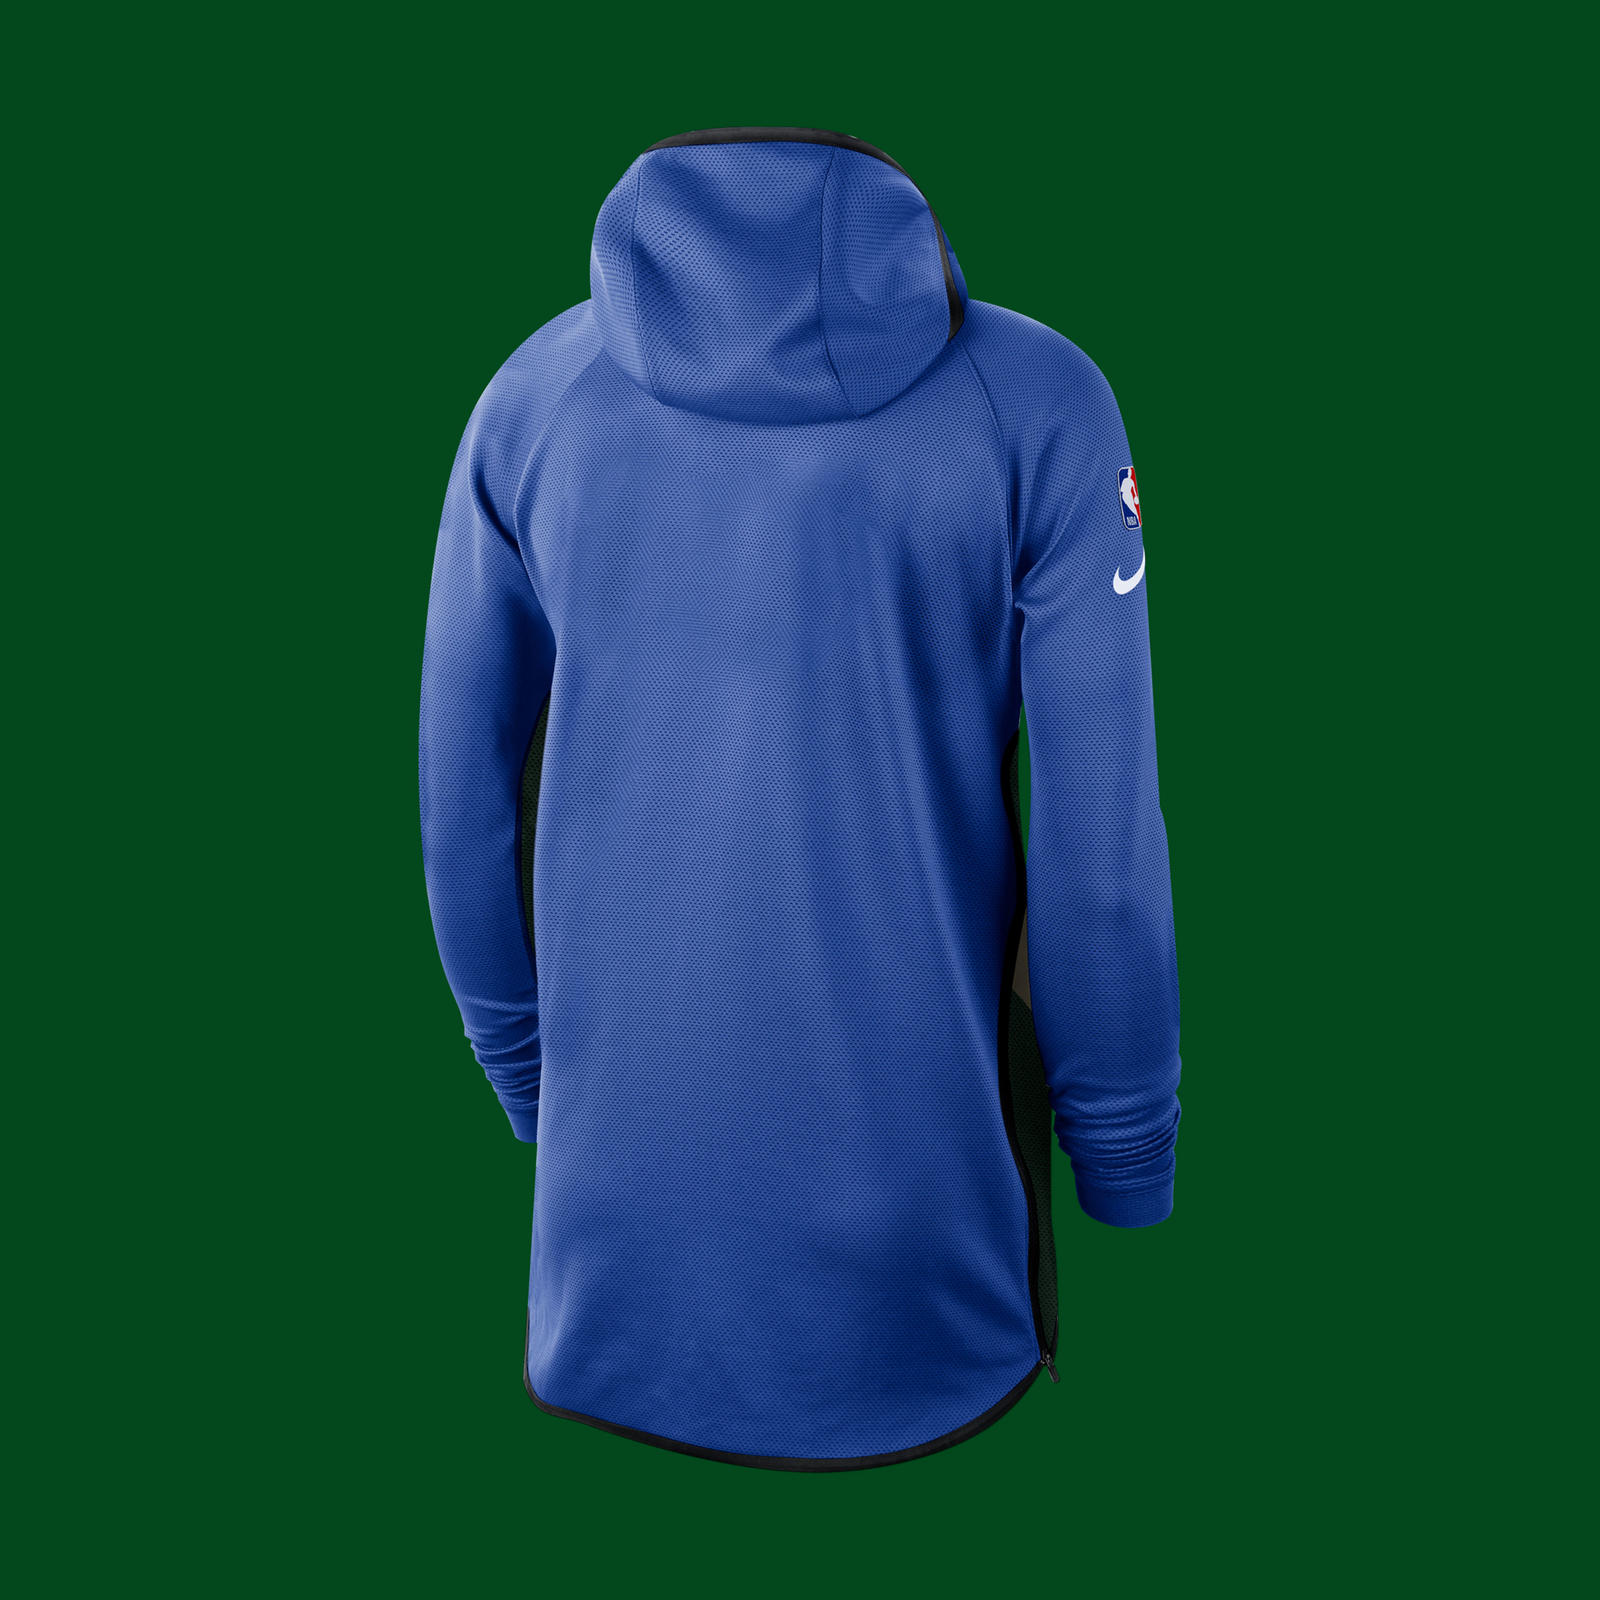 Nike NBA Earned Edition Showtime Hoodies 2019-20 Official Images 13